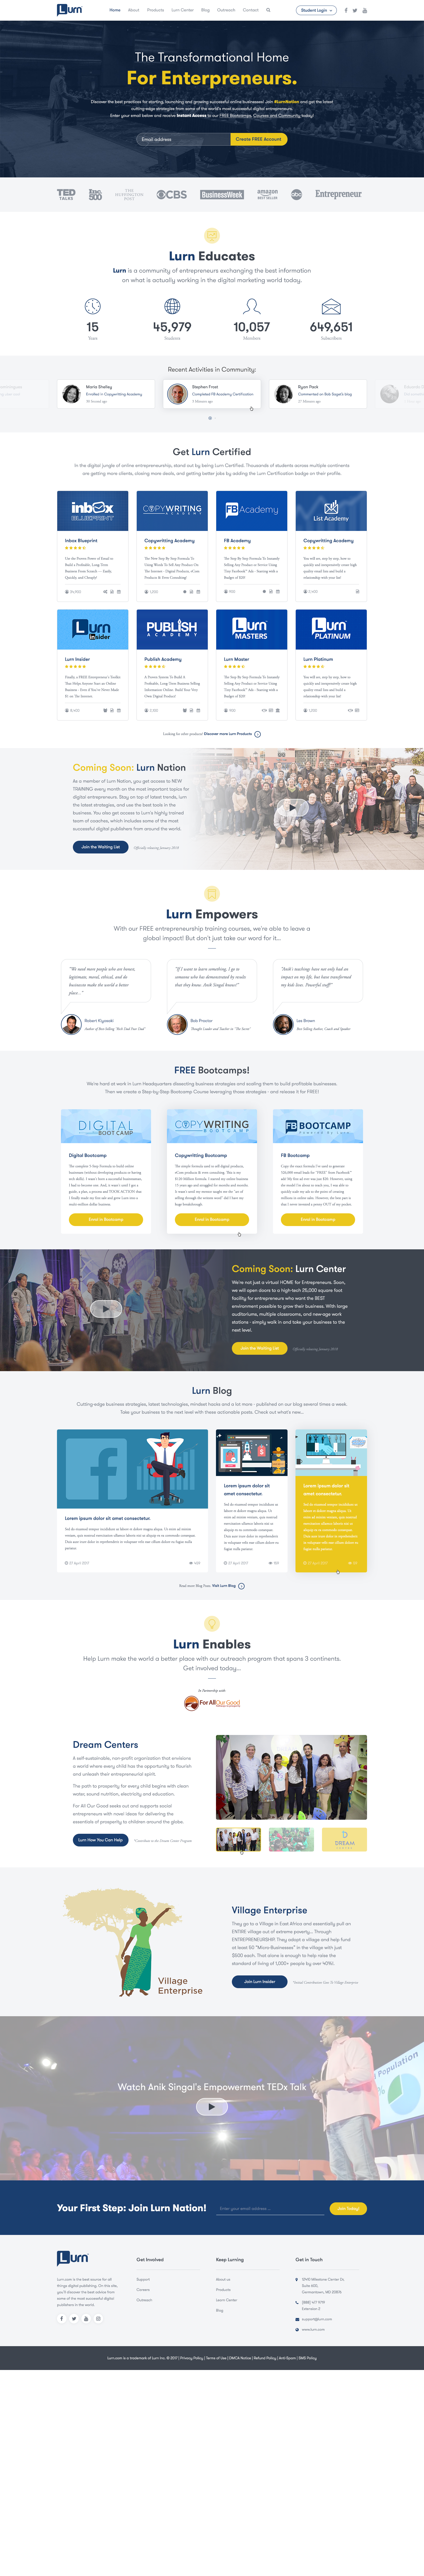 Big Payout! New Home Page/Brand Site For Entrepreneur Training Company